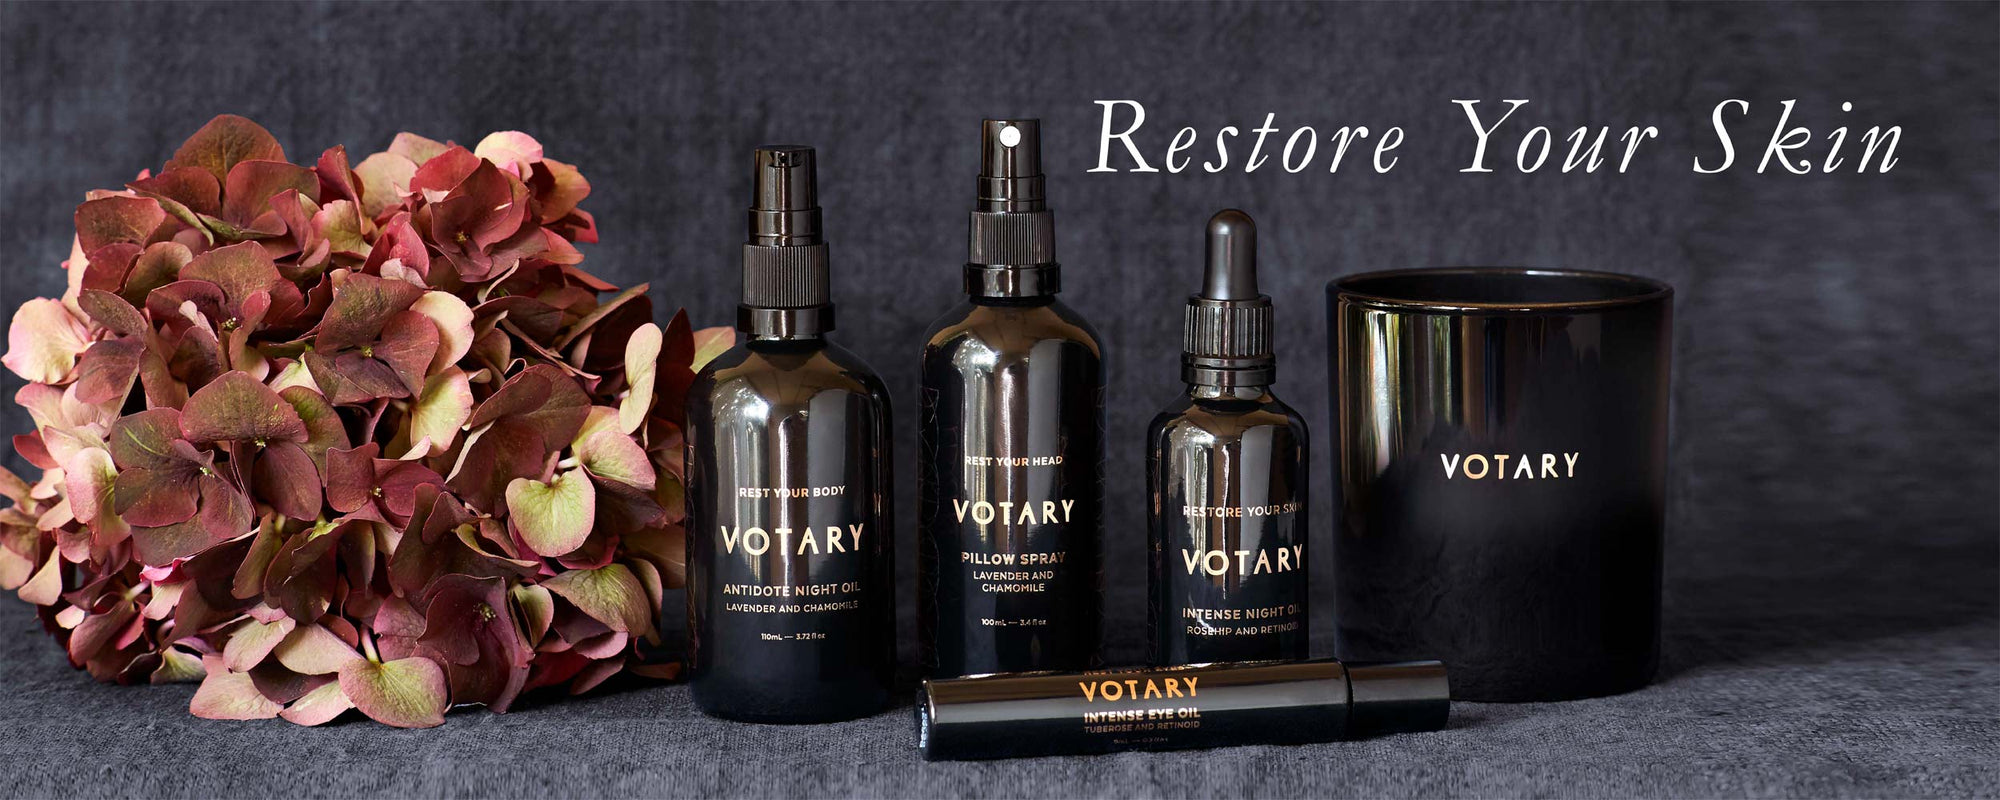 Votary INTENSE NIGHT RECOVERY